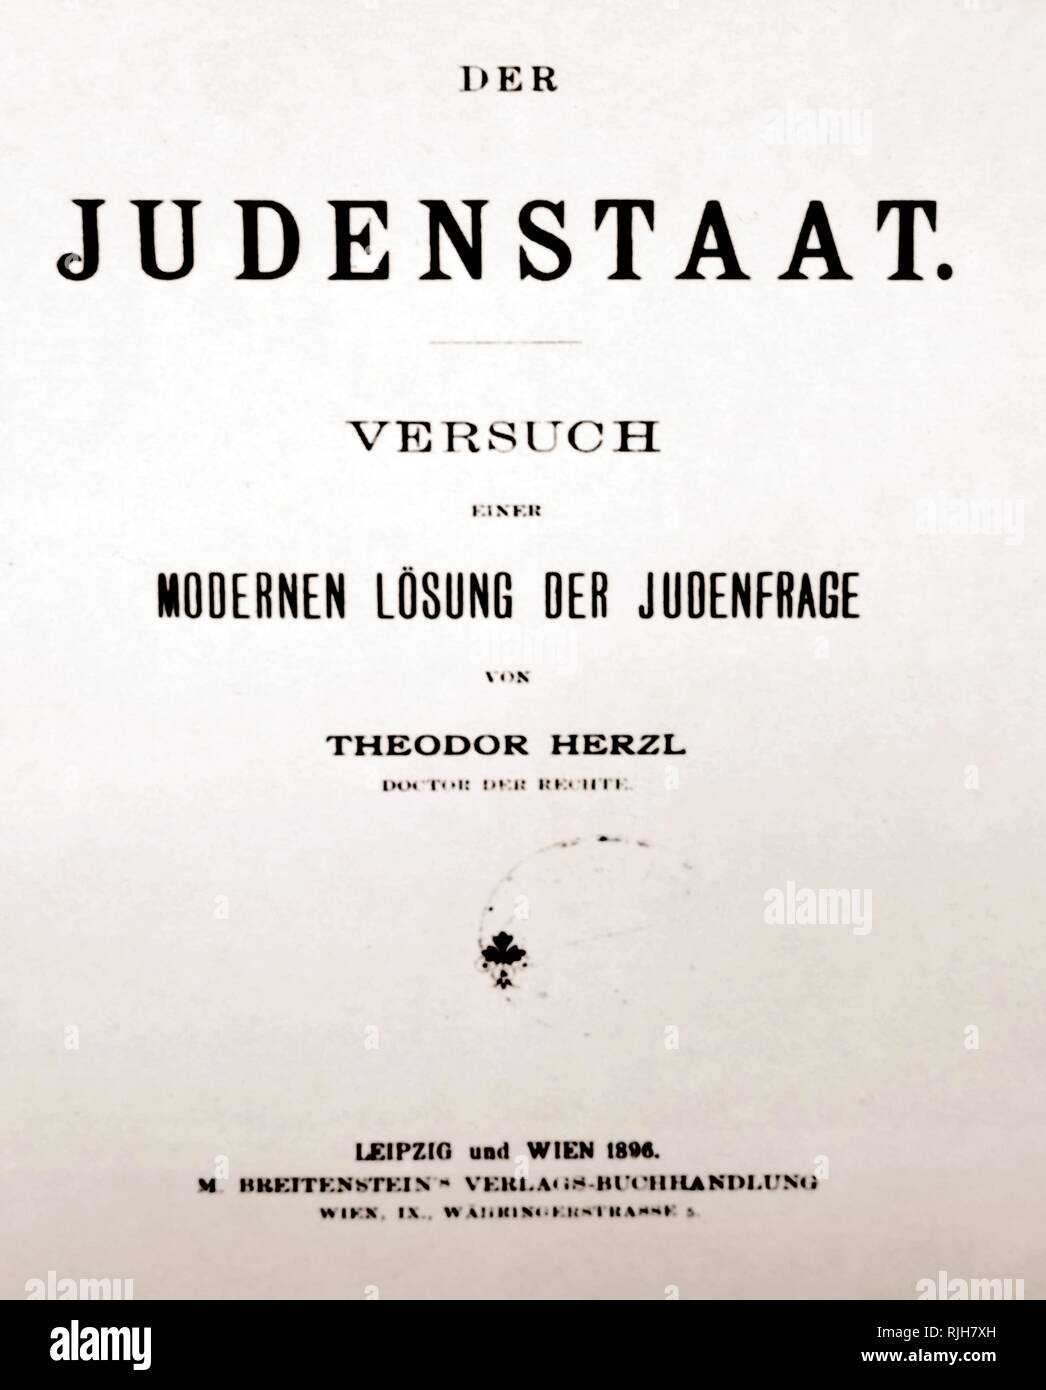 Title page from 'Der Judenstaat' (The Jews' State); a pamphlet written by Theodor Herzl and published in February 1896 in Leipzig and Vienna. It is considered one of the most important texts of early Zionism. As expressed in this book, Herzl envisioned the founding of a future independent Jewish state during the 20th century. He argued that the best way to avoid anti-Semitism in Europe was to create this independent Jewish state. The book encouraged Jews to purchase land in Palestine, although the possibility of a Jewish state in Argentina is also considered. - Stock Image